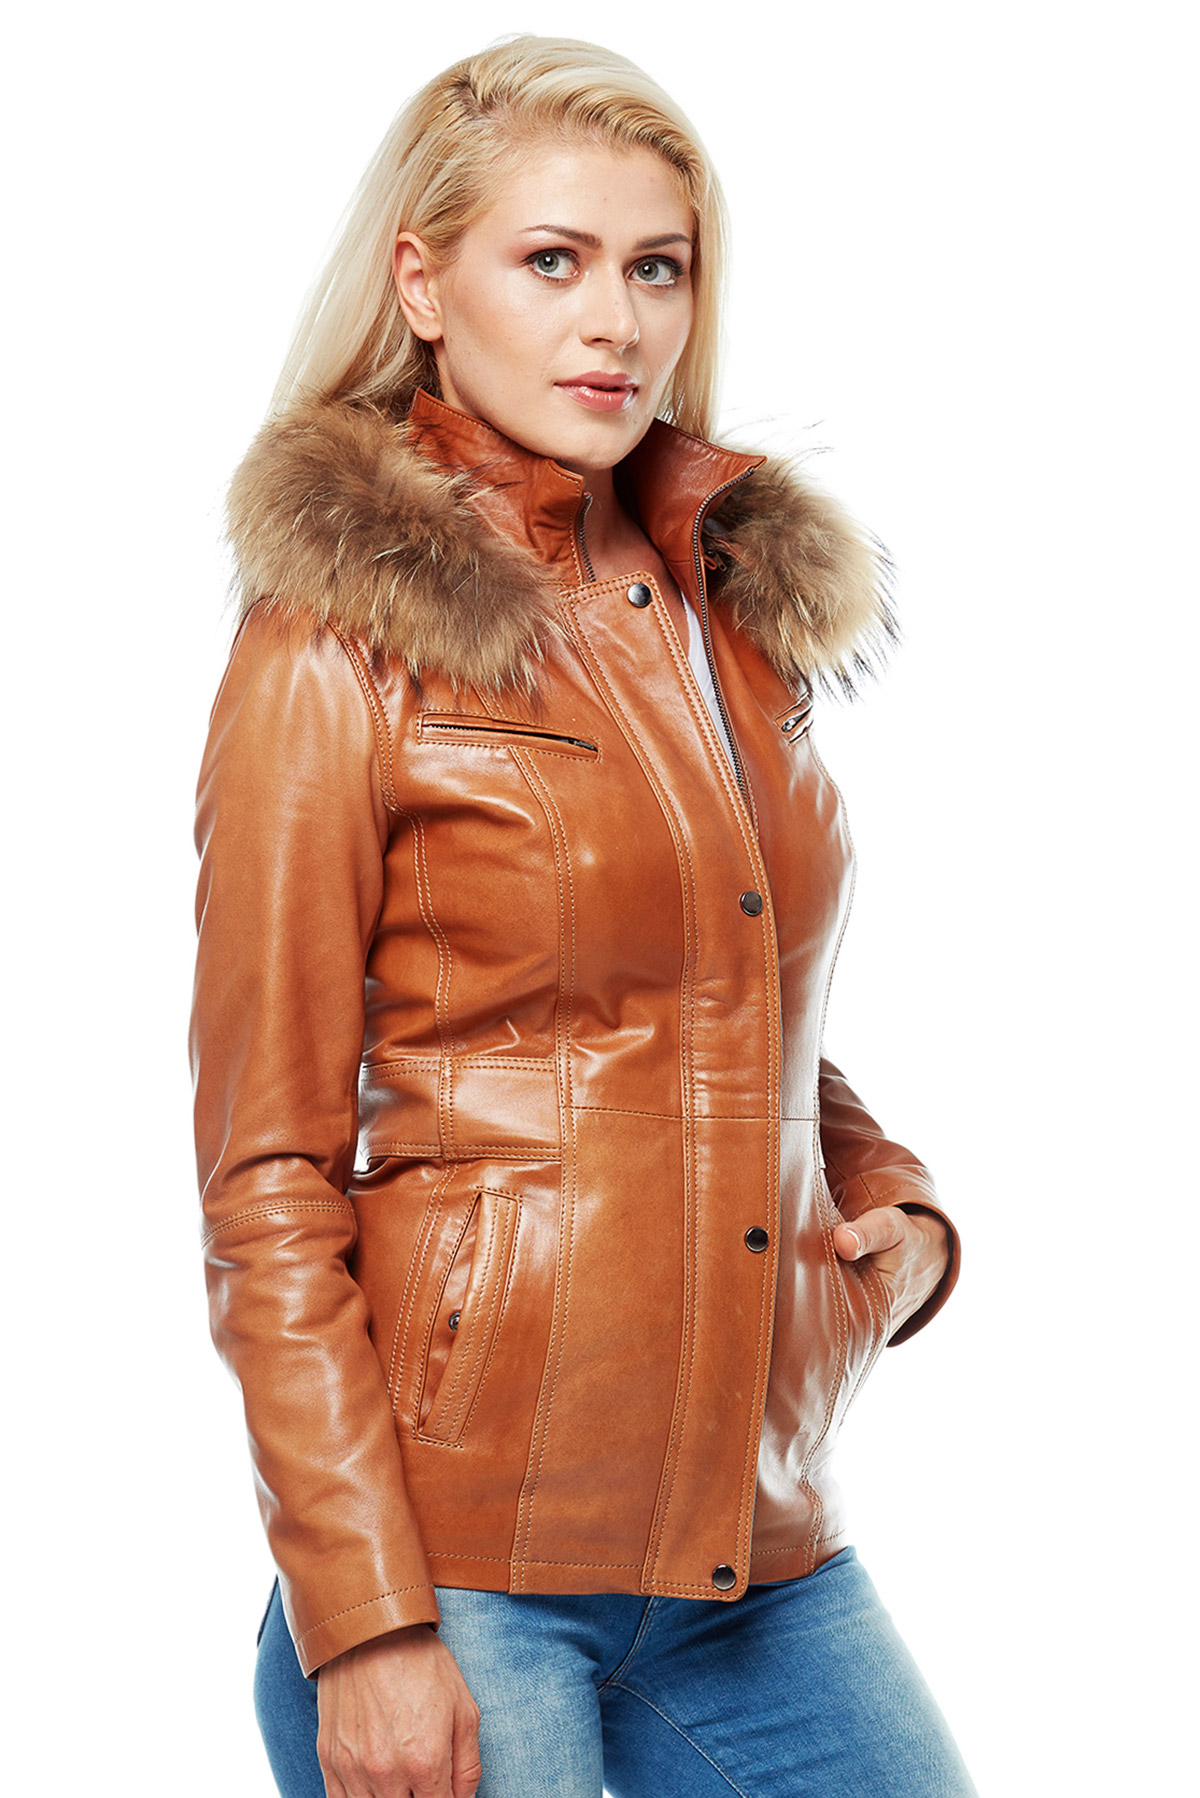 how much is a genuine leather jacket